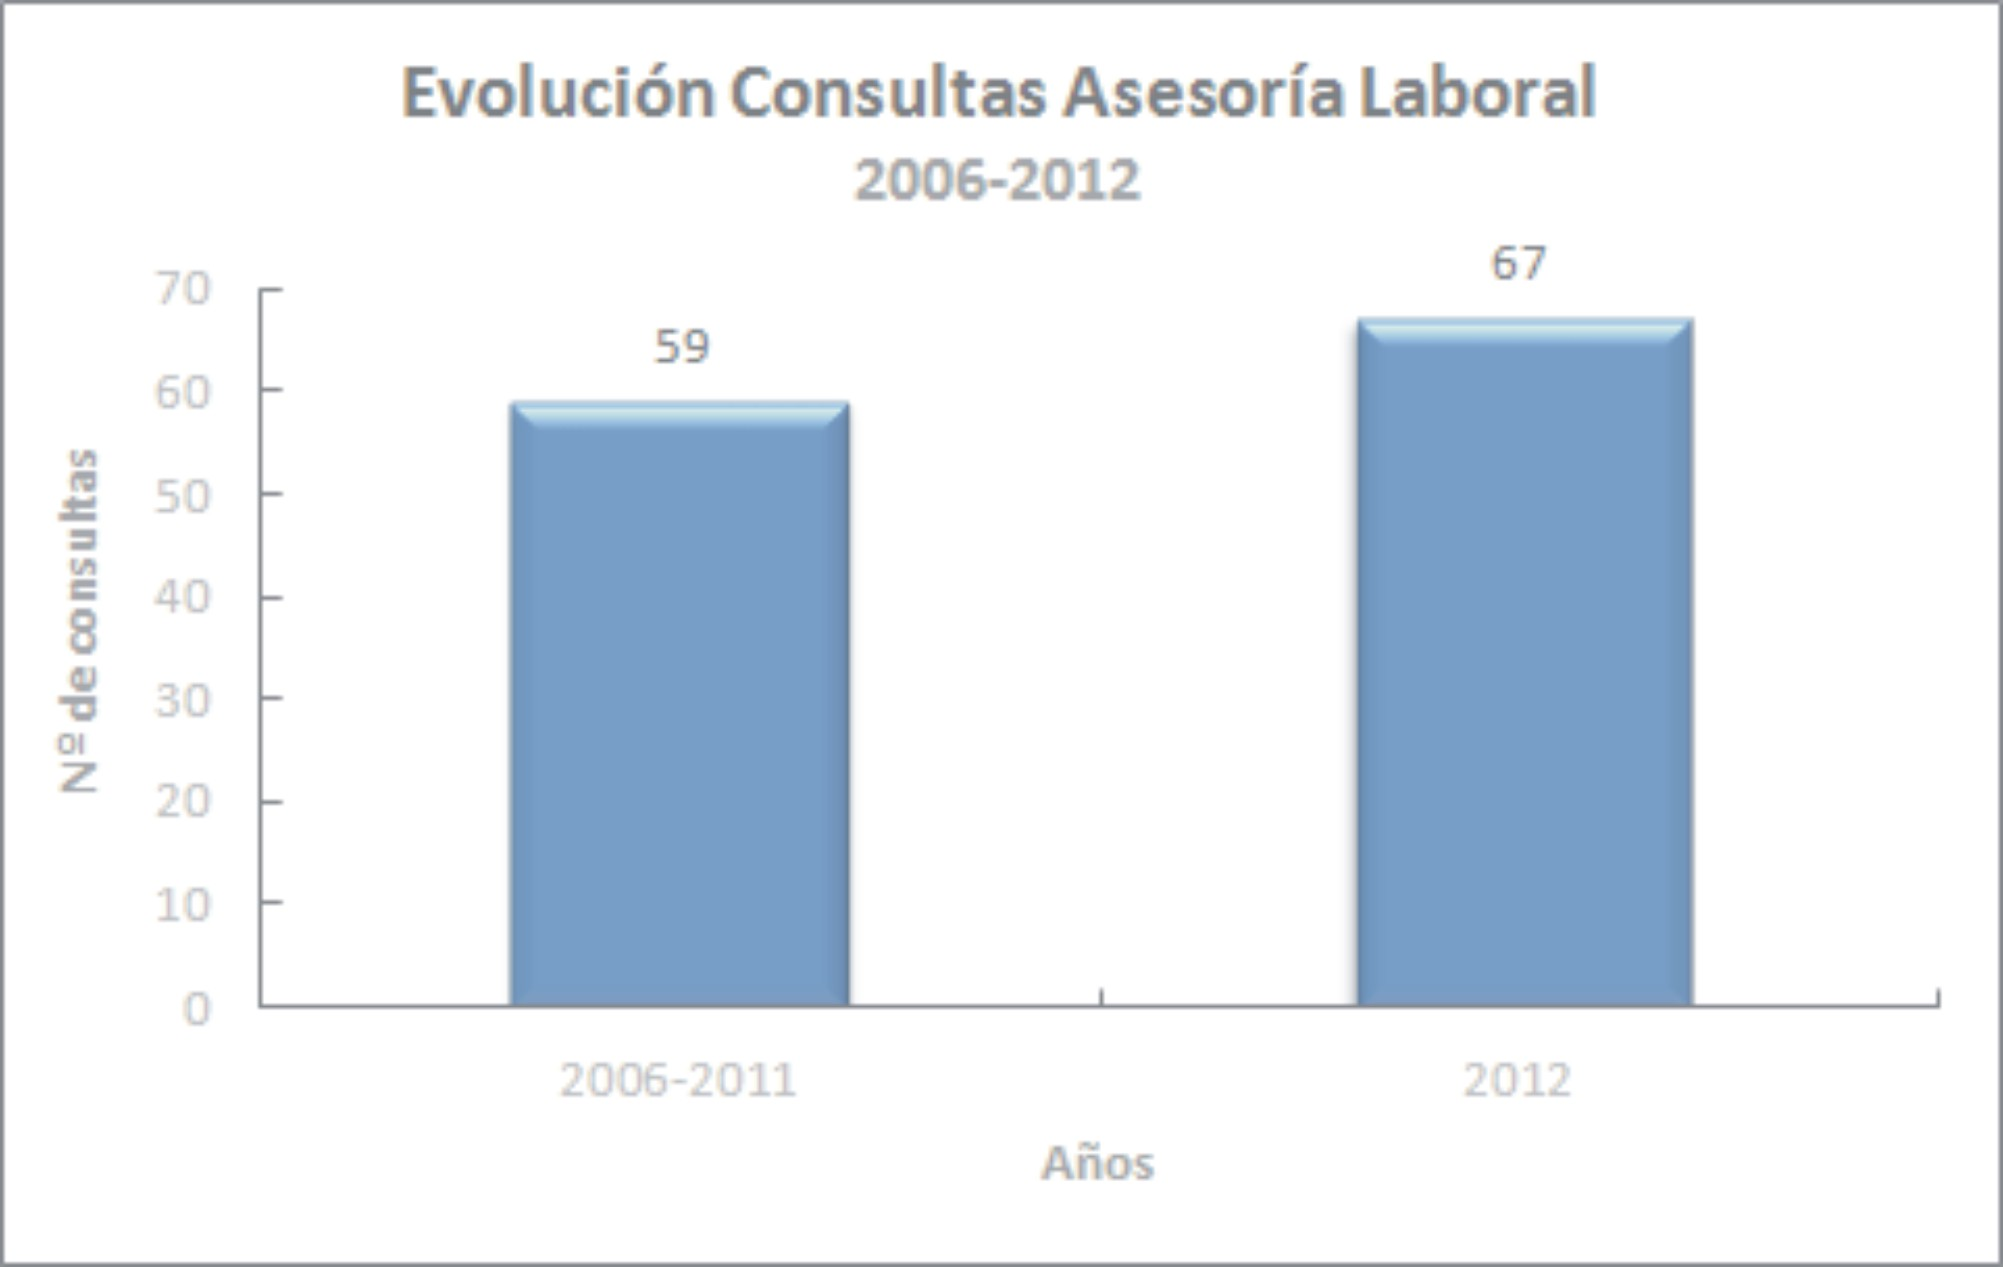 ASESORIALABORAL